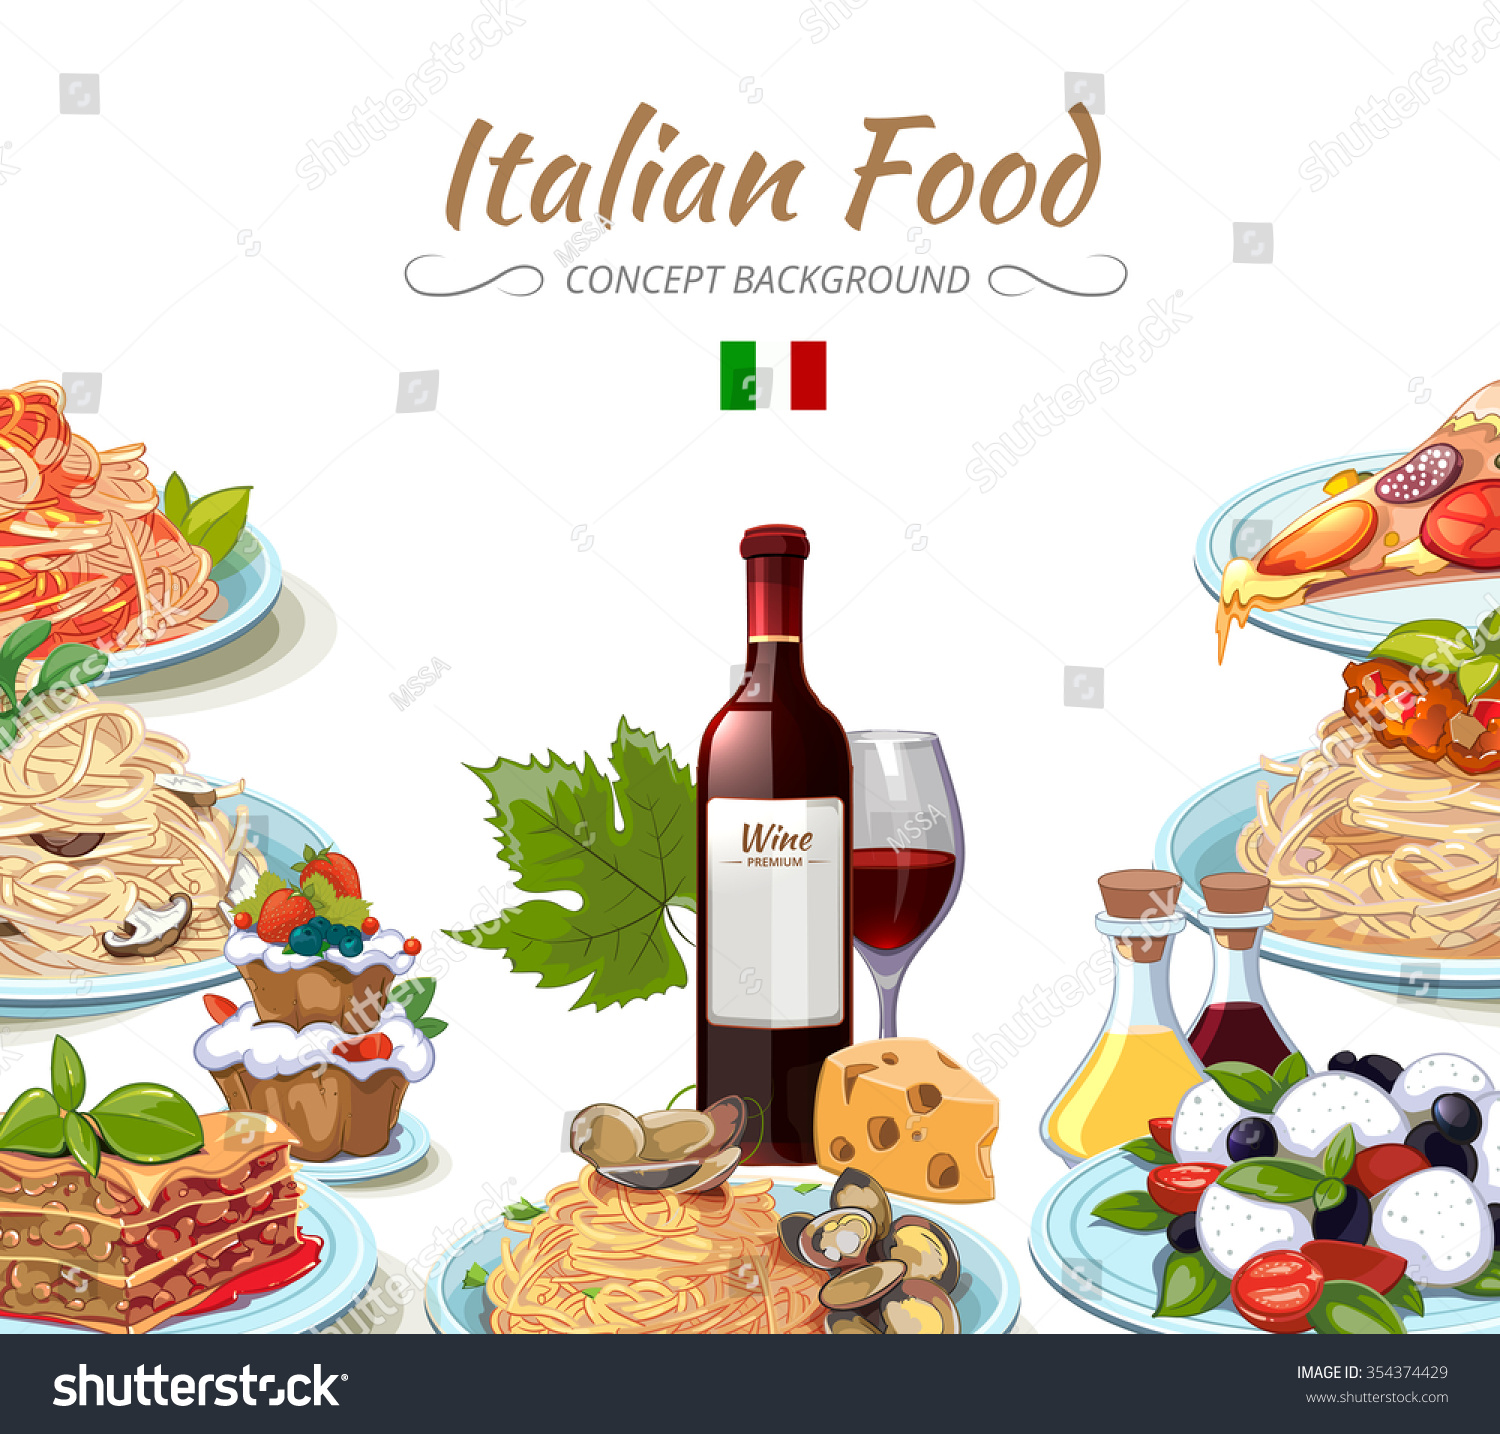 Italian cuisine food background cooking lunch stock vector for About italian cuisine